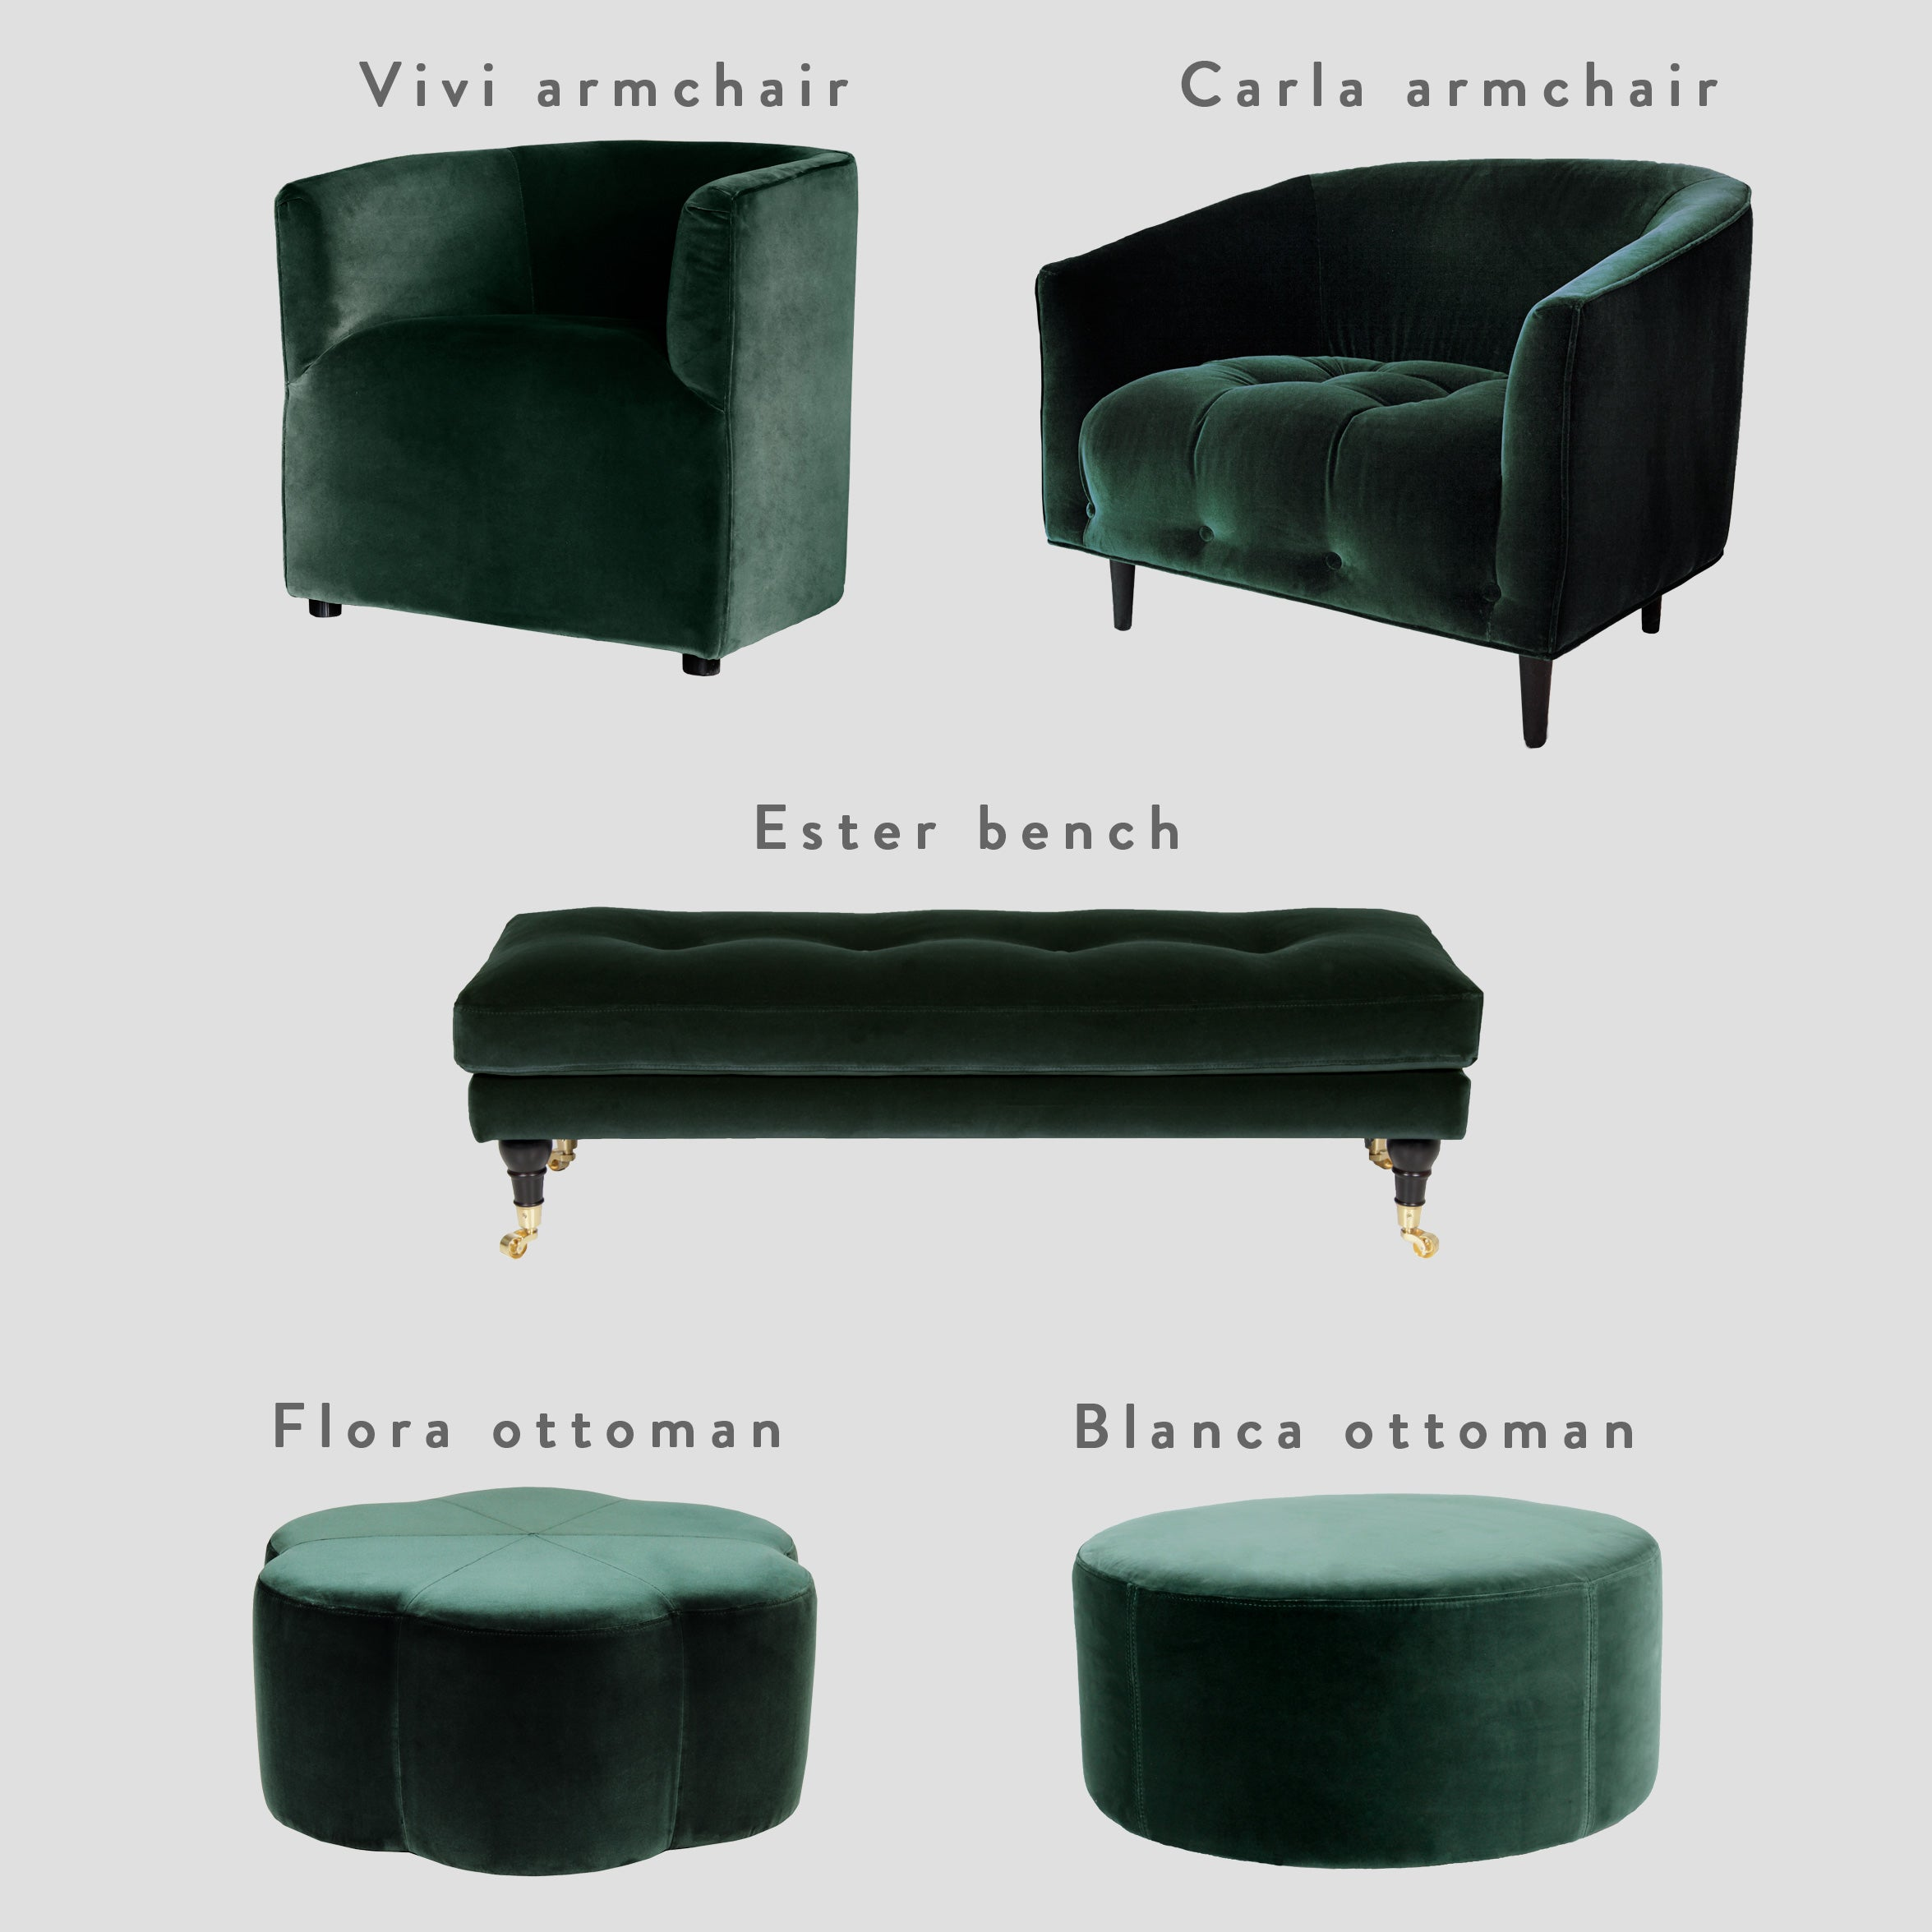 Furniture velvet fabric swatch – Emerald Green